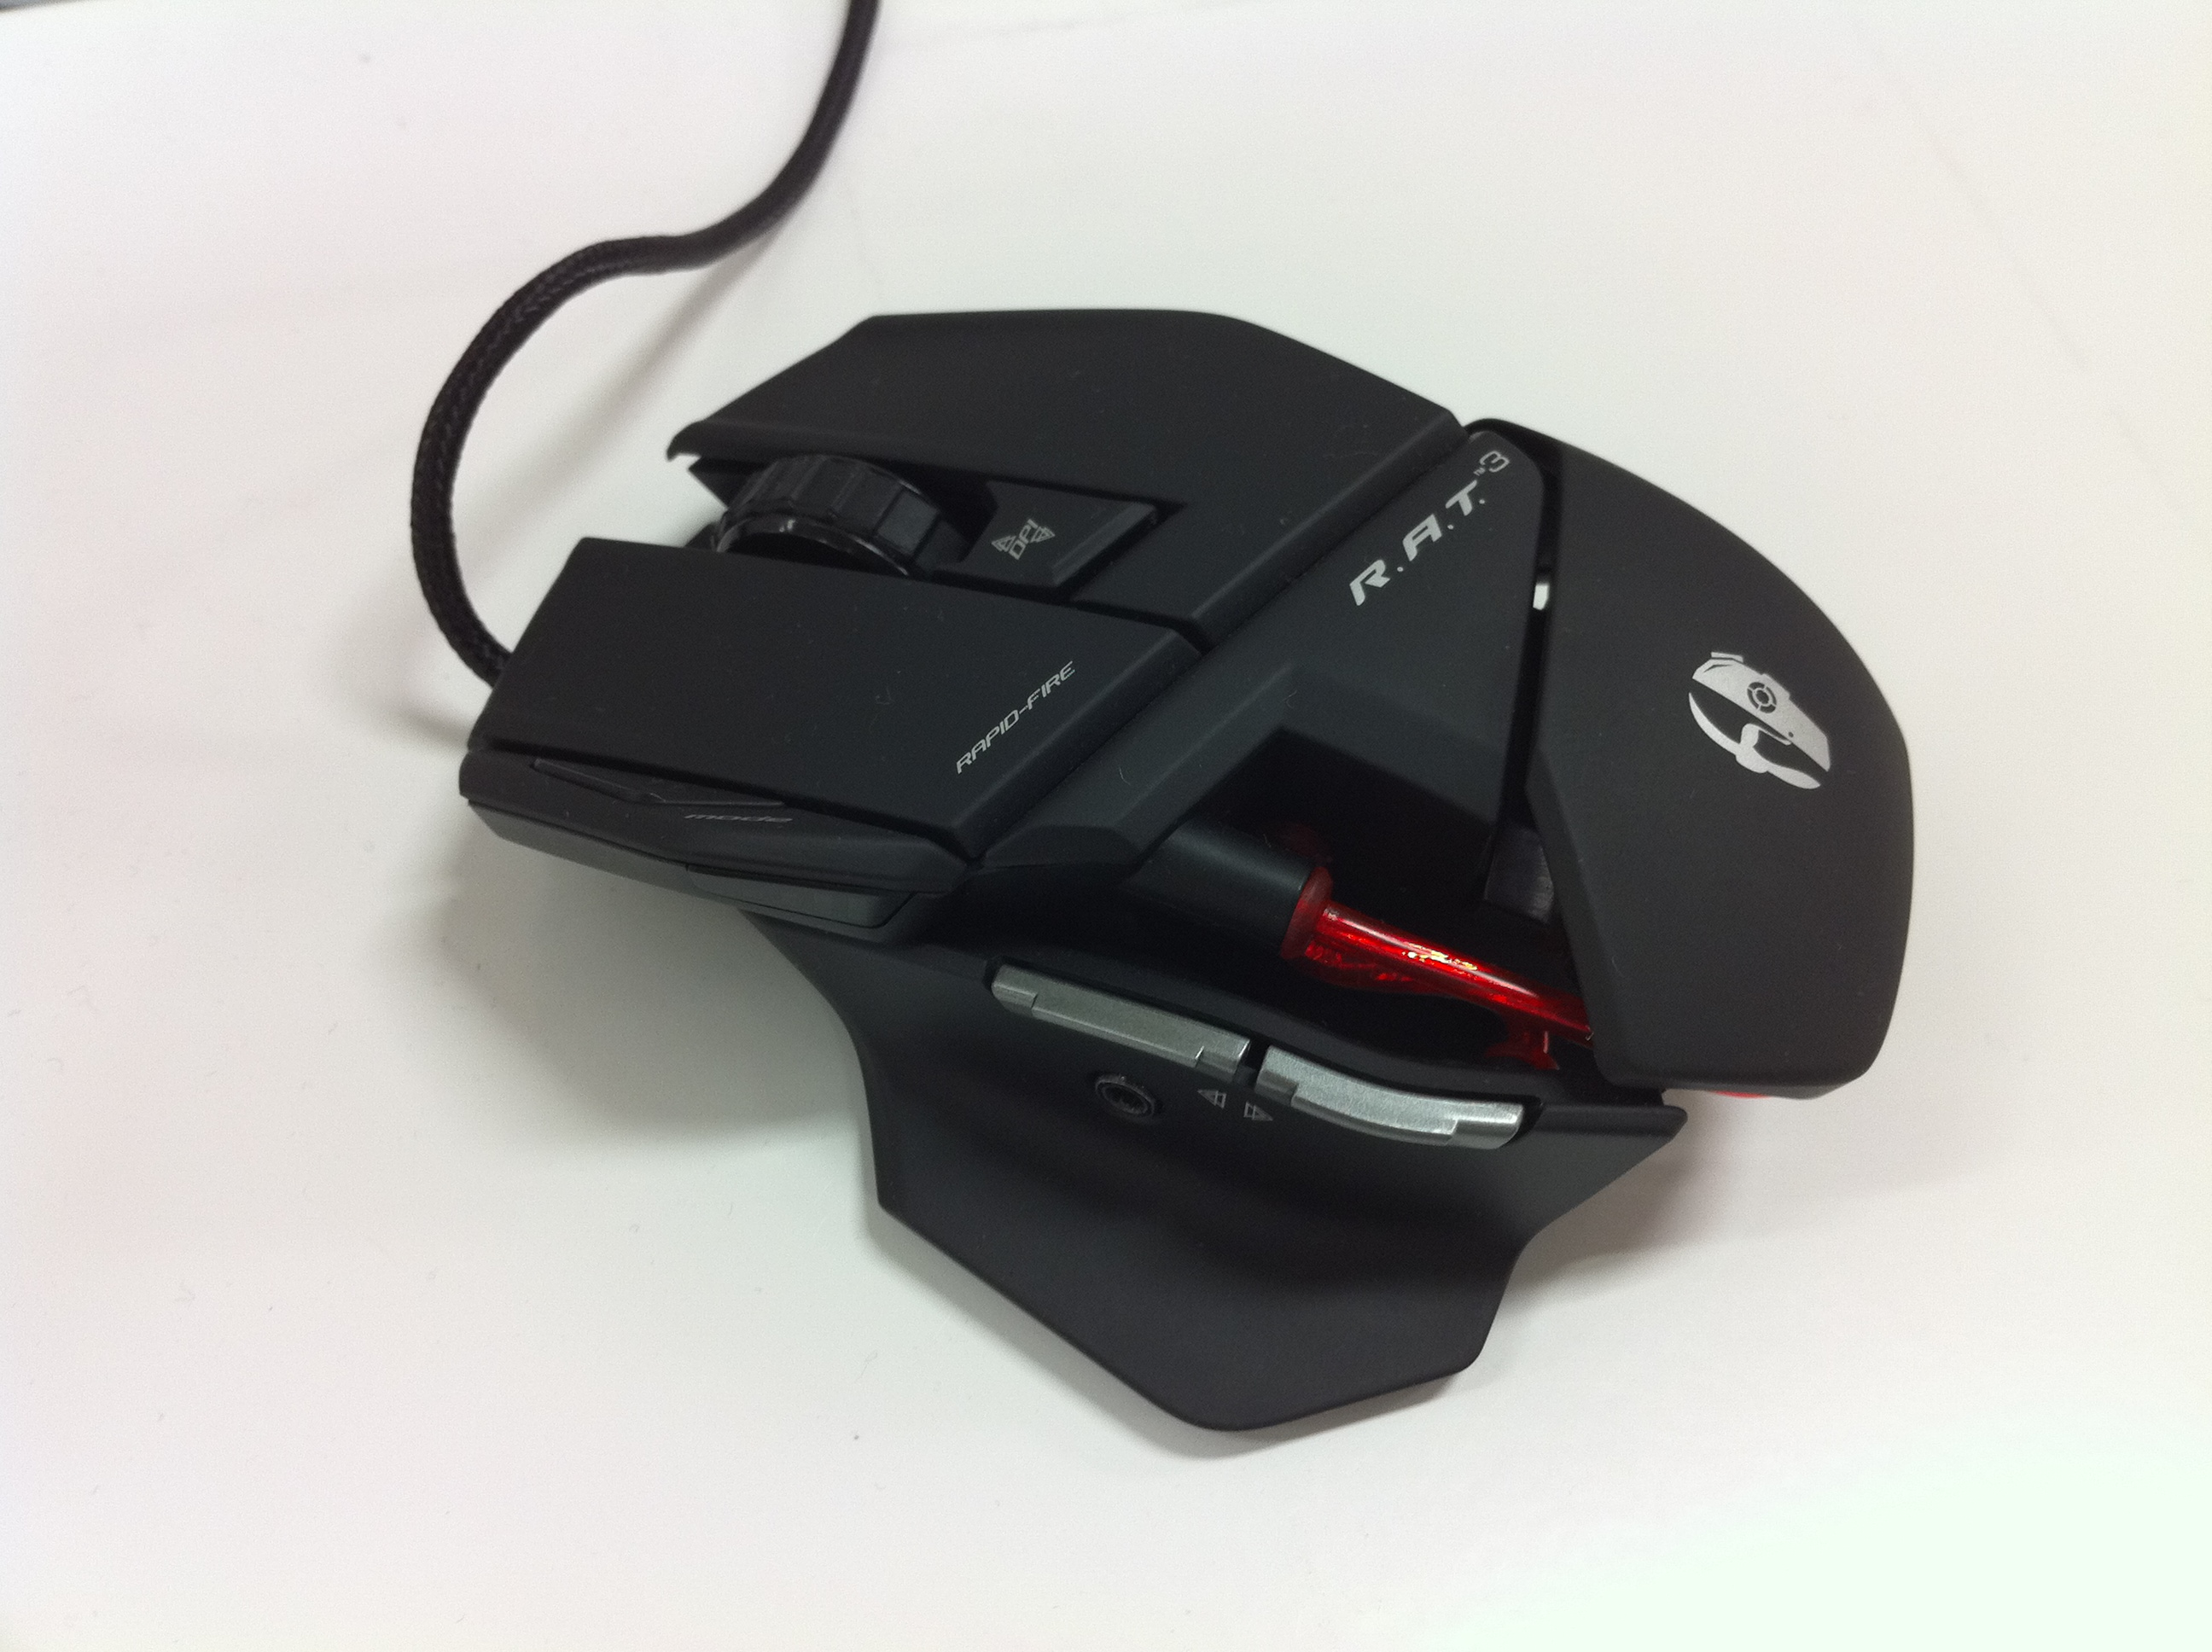 cyborg_mouse_rat_3_1.JPG